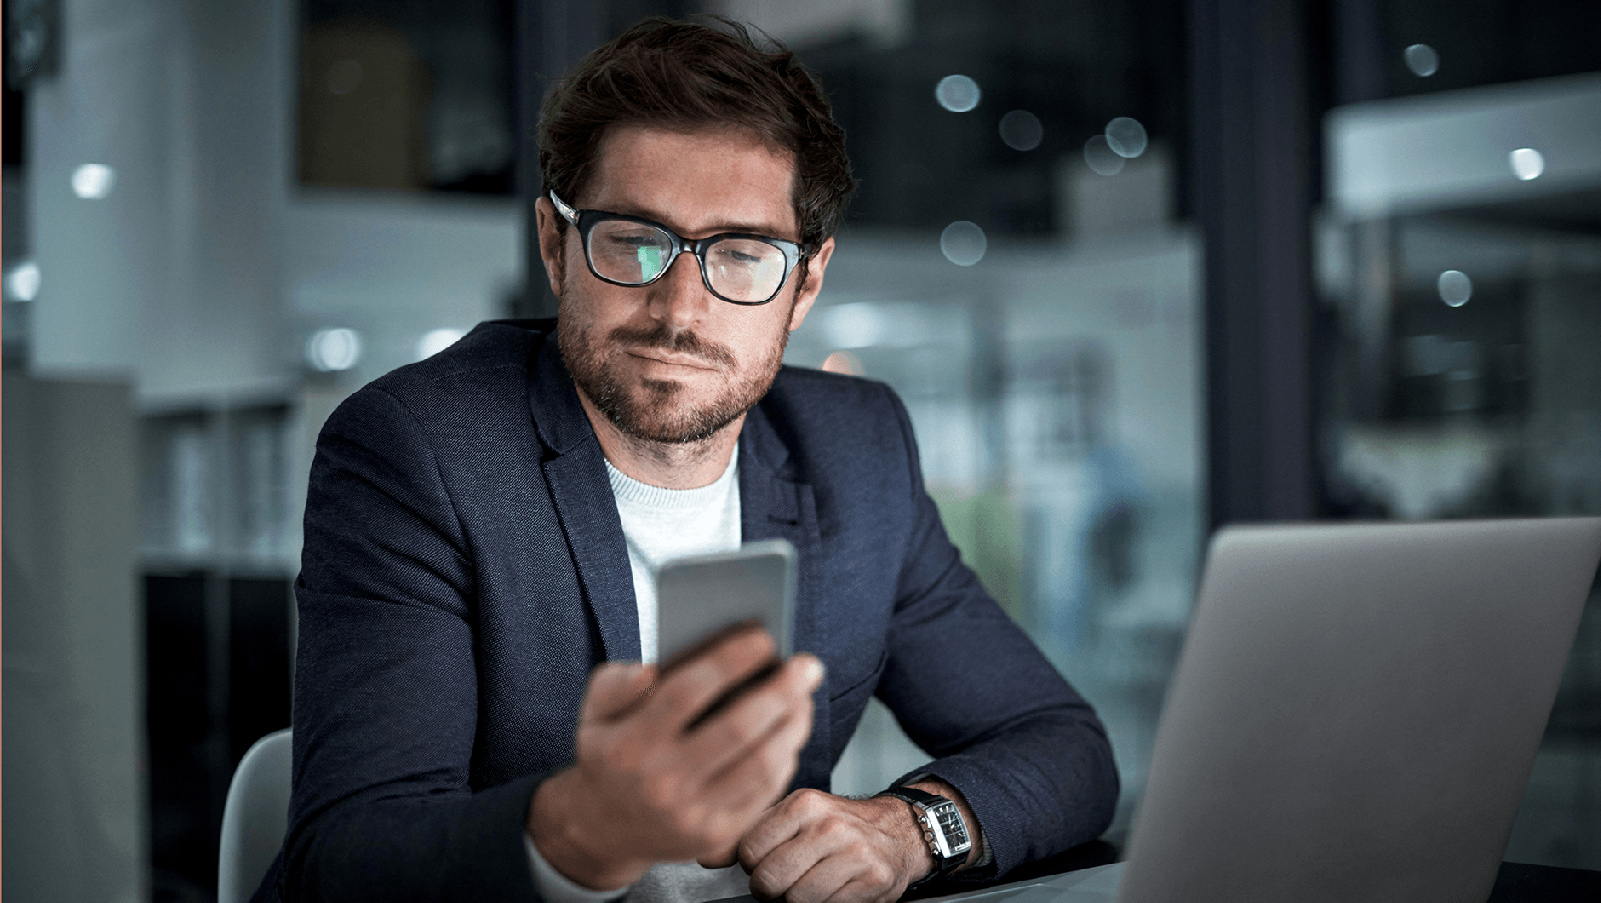 Man in glasses looking at his phone at a desk.